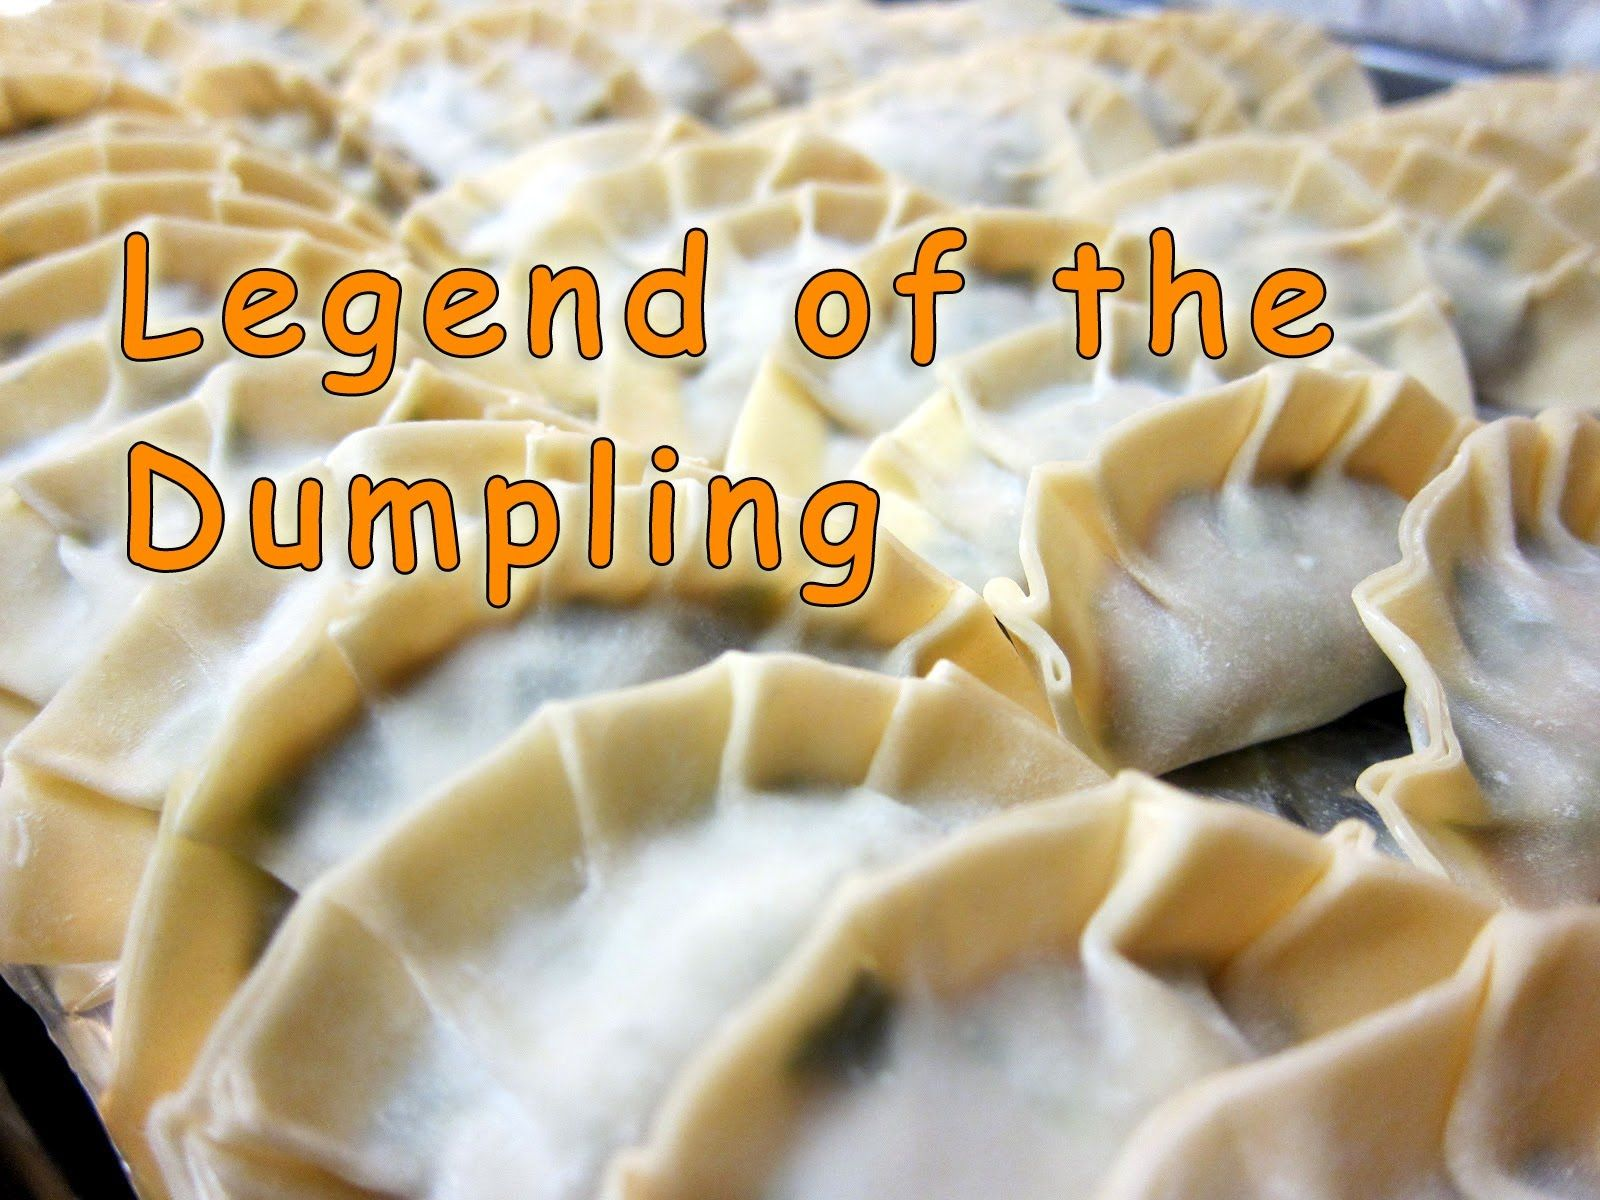 where dumplings came from and why eat them on new years food eat people eating where dumplings came from and why eat